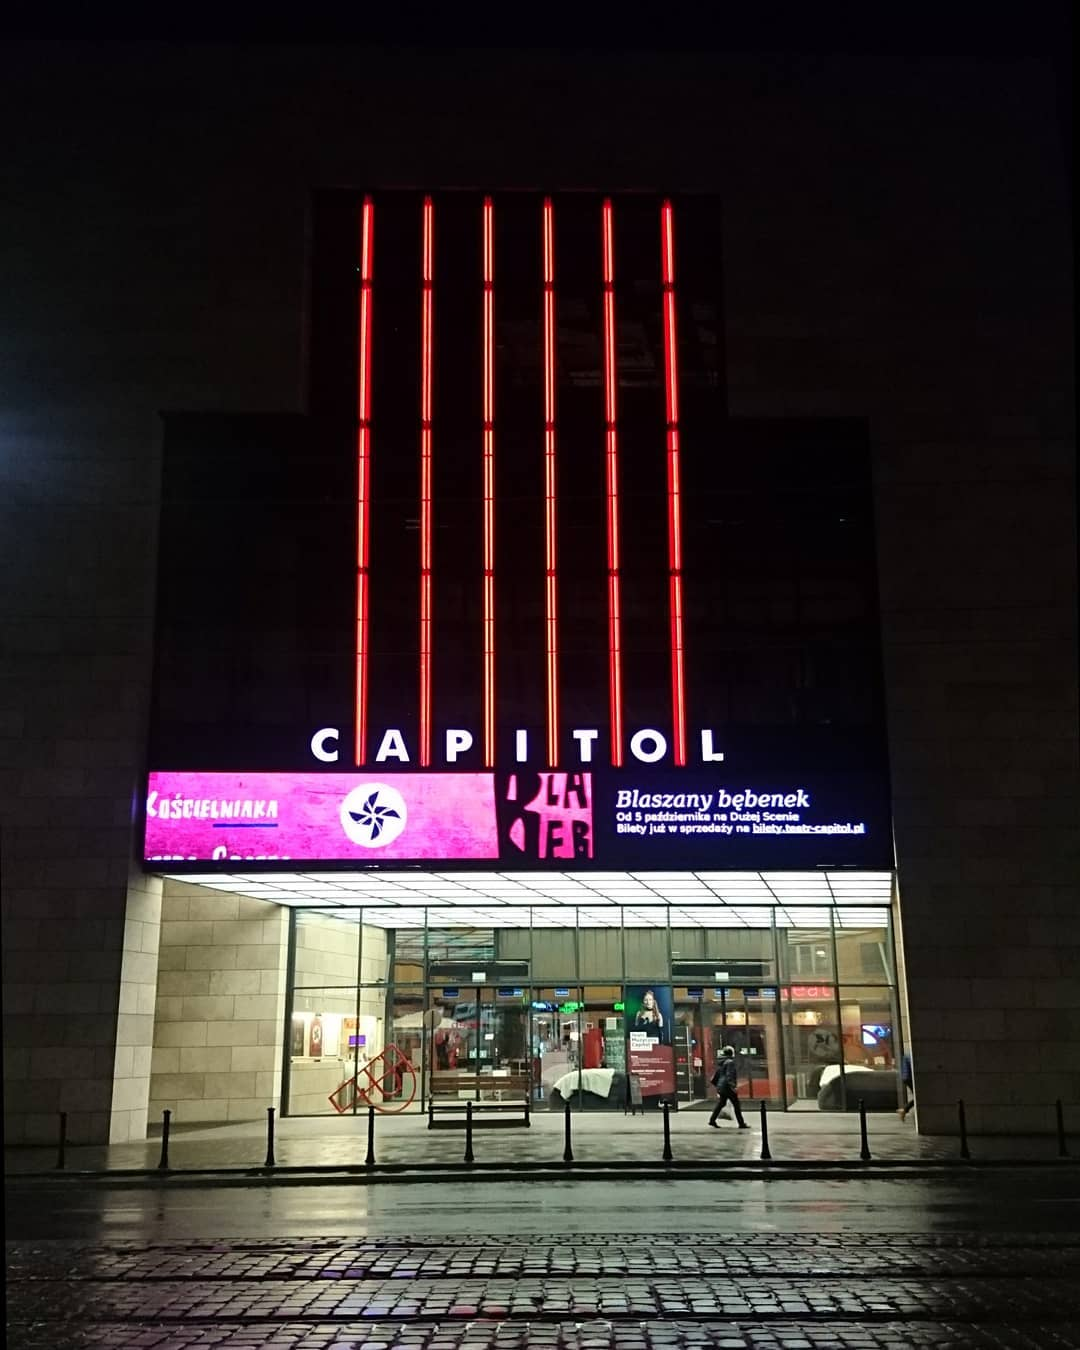 Capitol teater, with neonlight entrance #teater #capitol ...